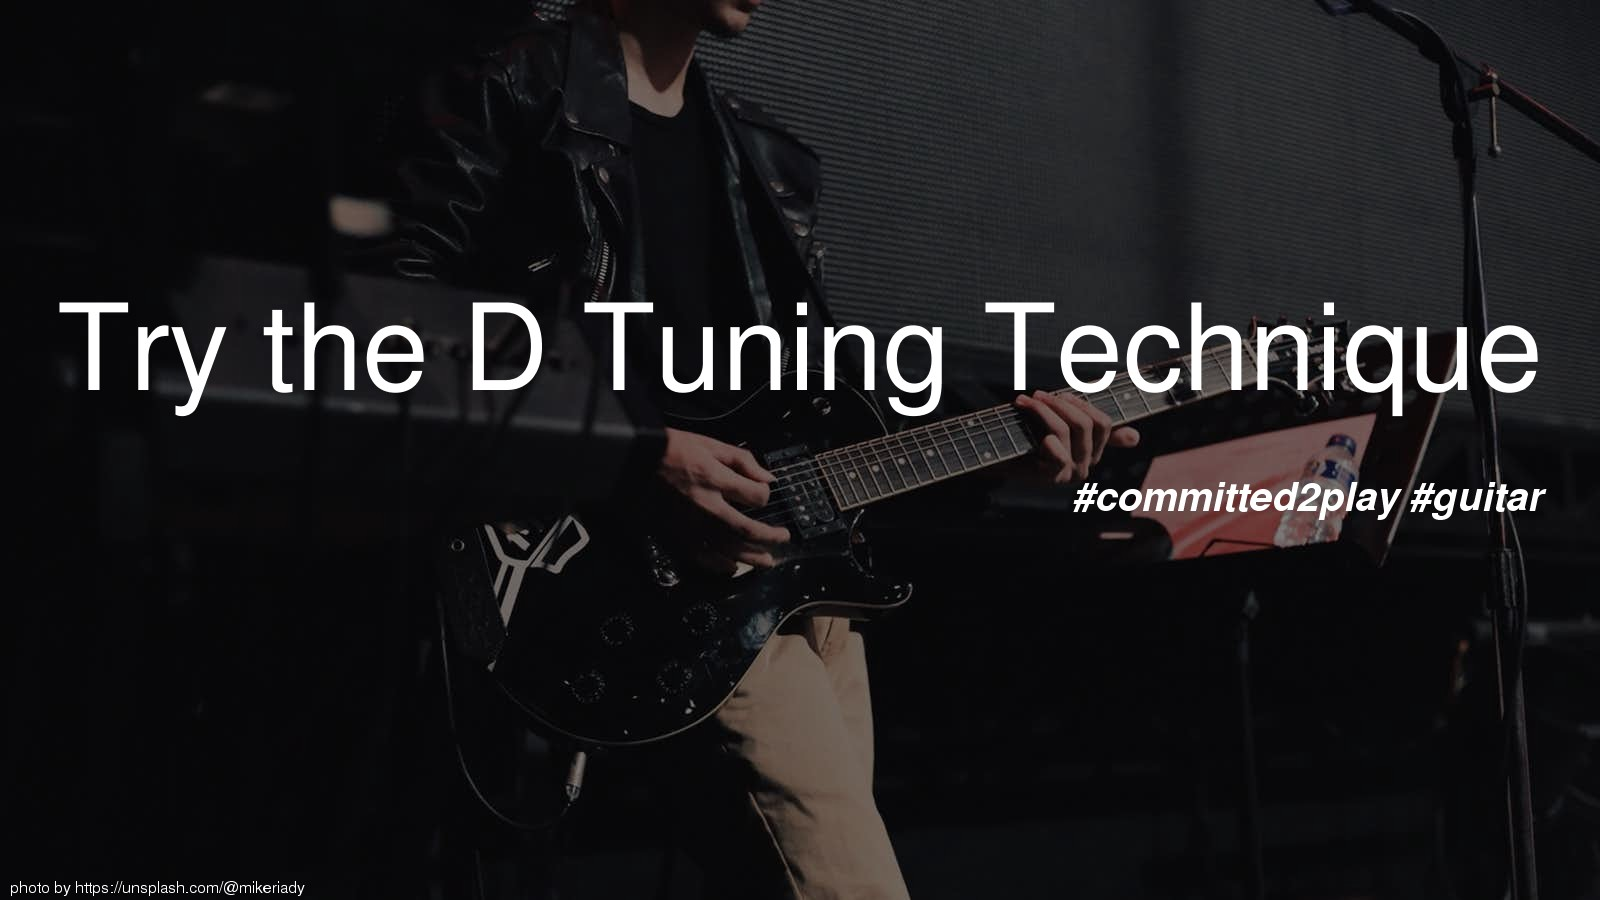 Try the D Tuning Technique